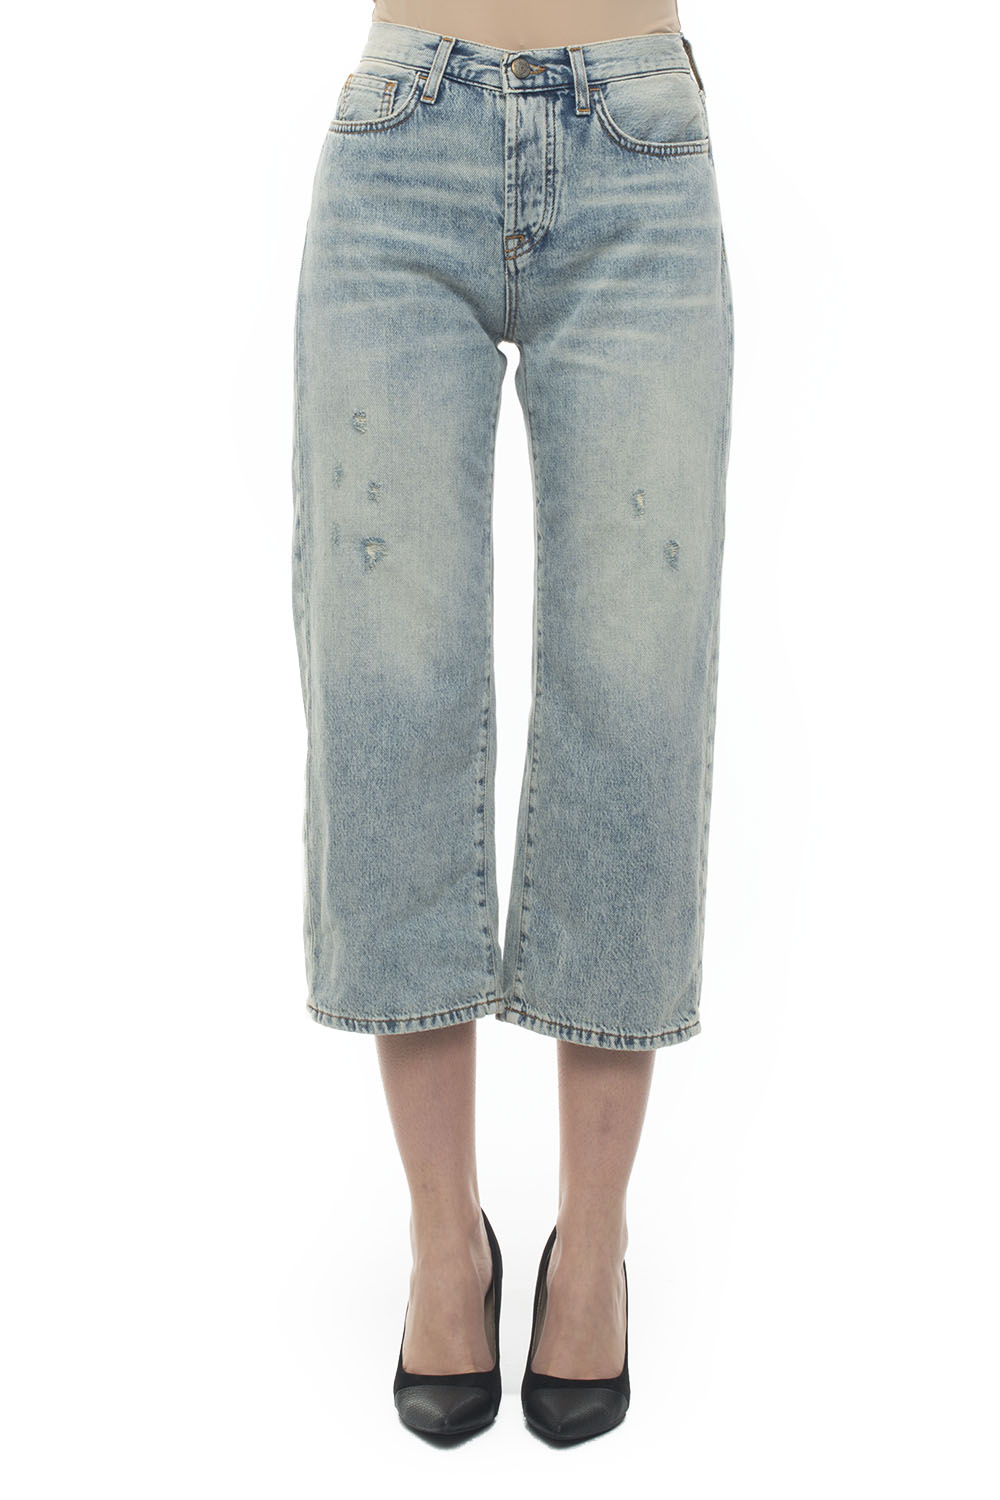 low cost 55b87 74078 FLICK 5 pocket Jeans with cuttings